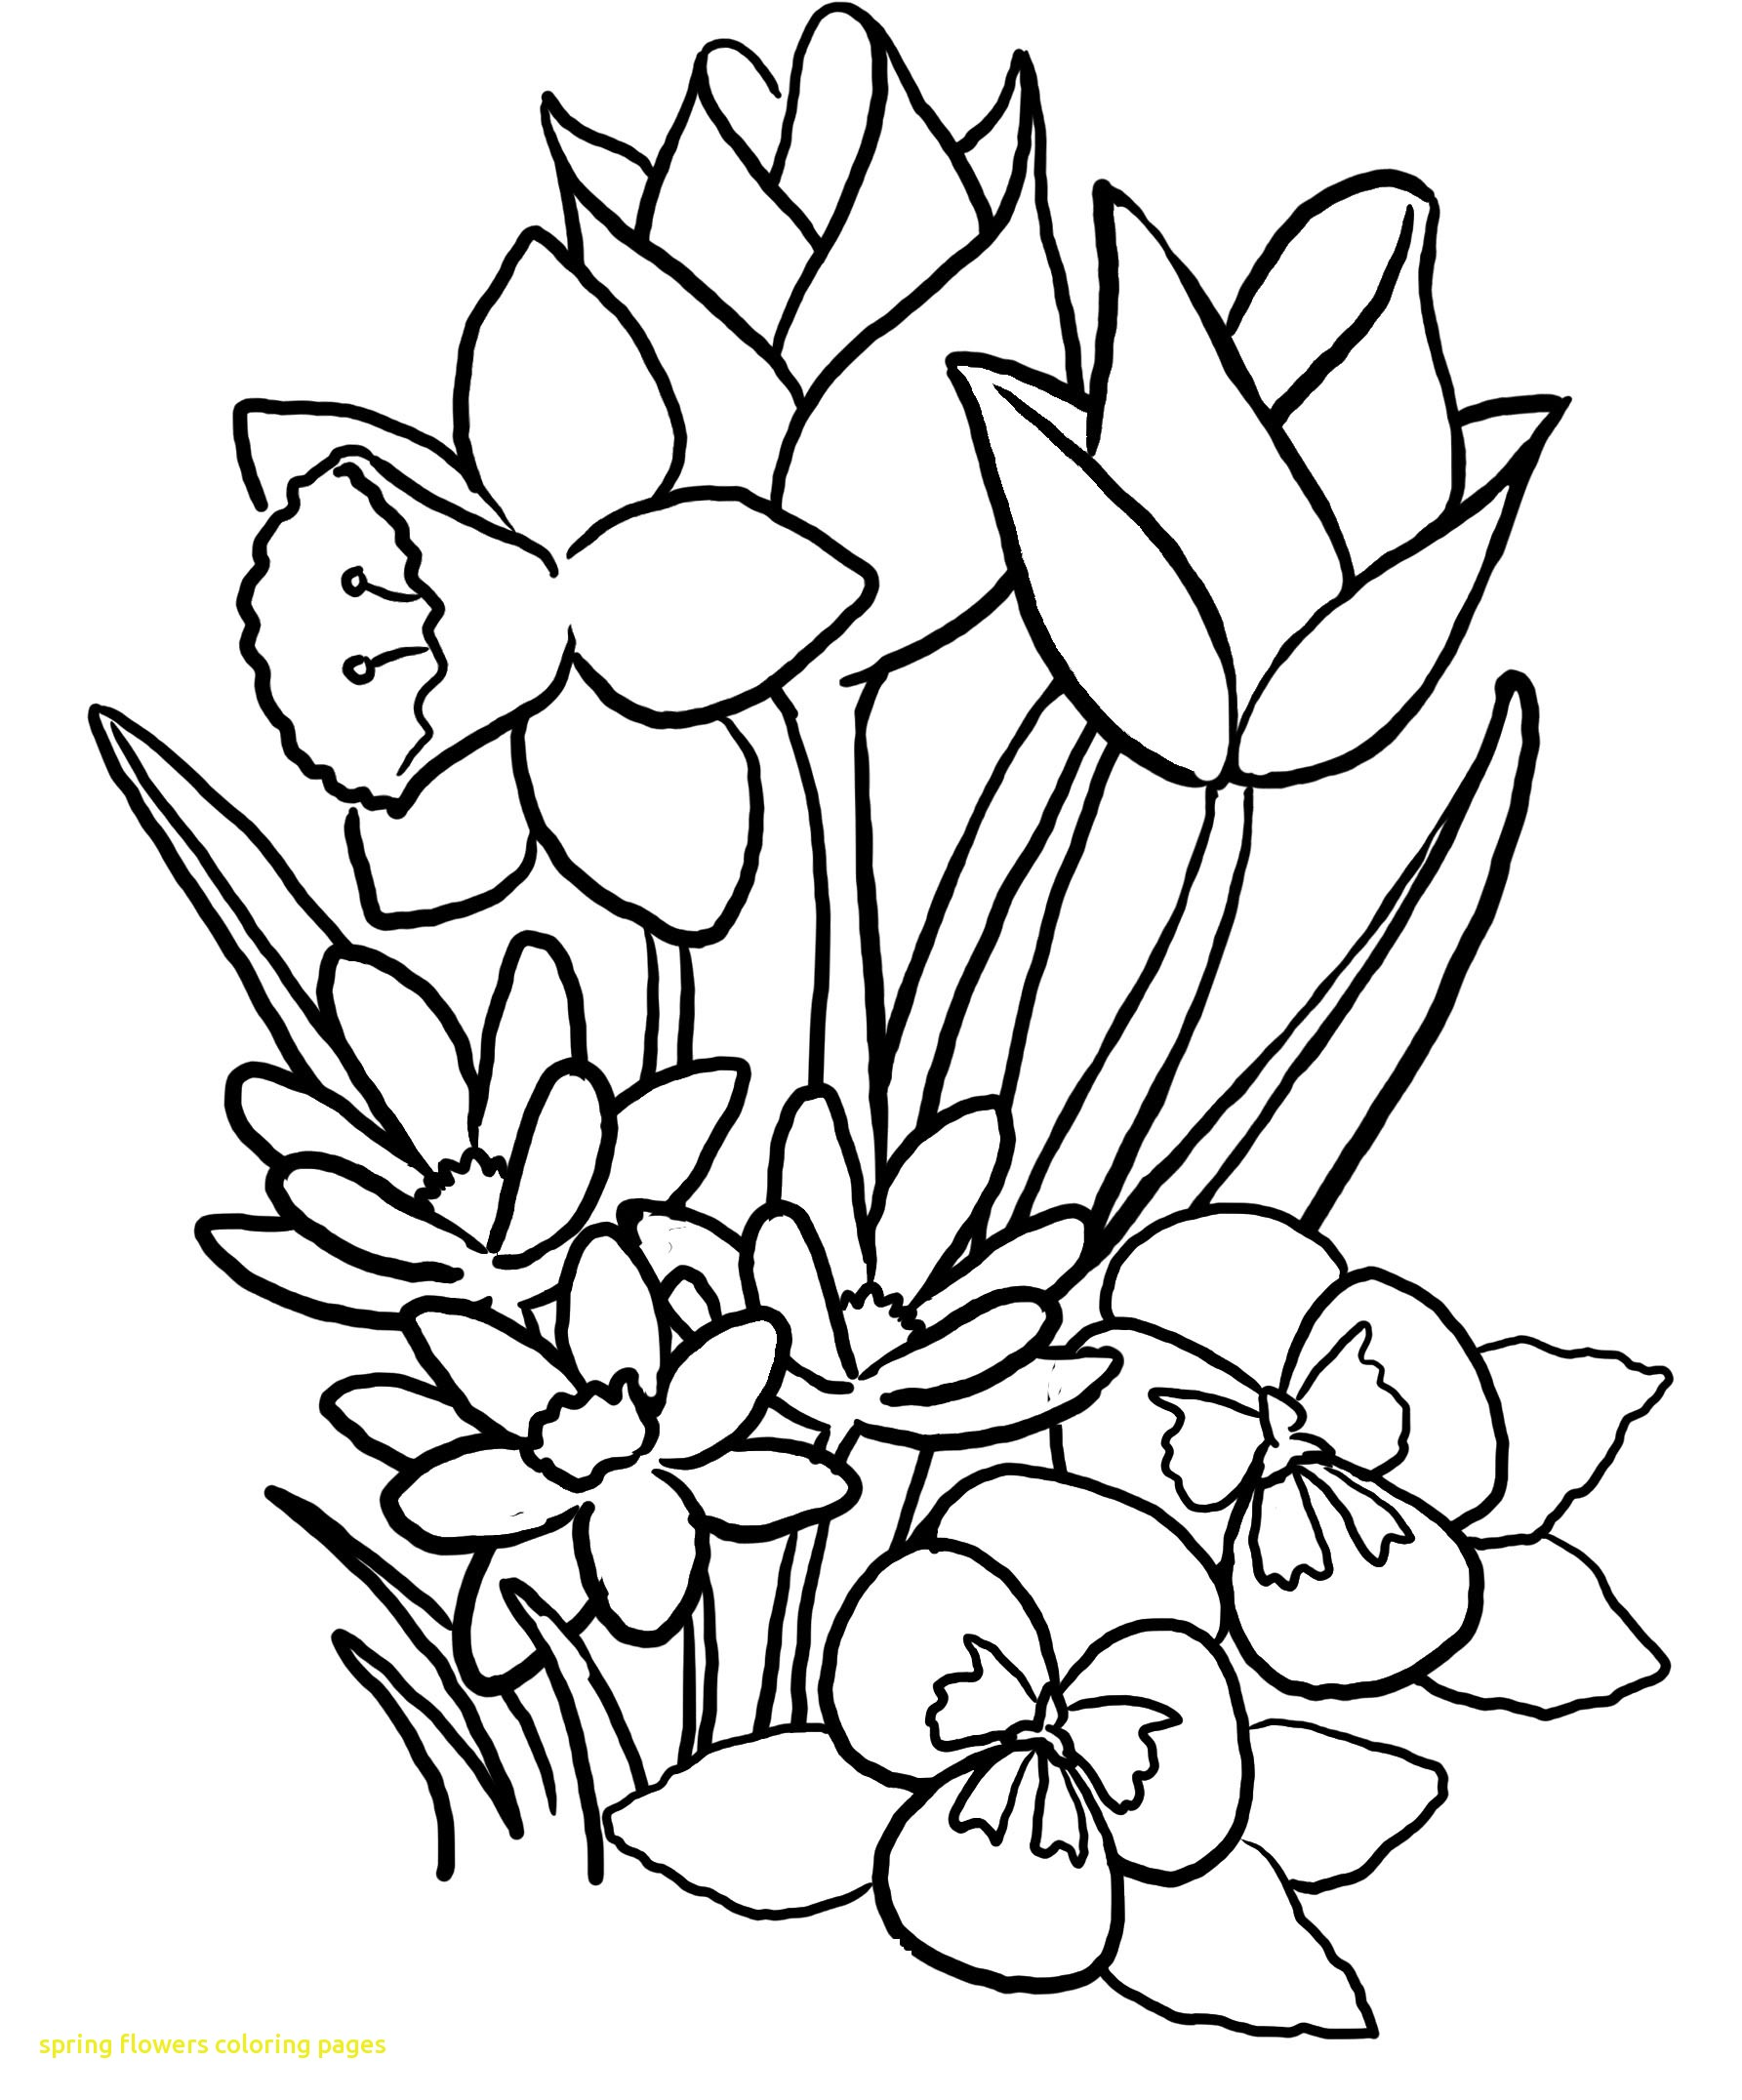 1785x2152 Spring Flower Coloring Pages